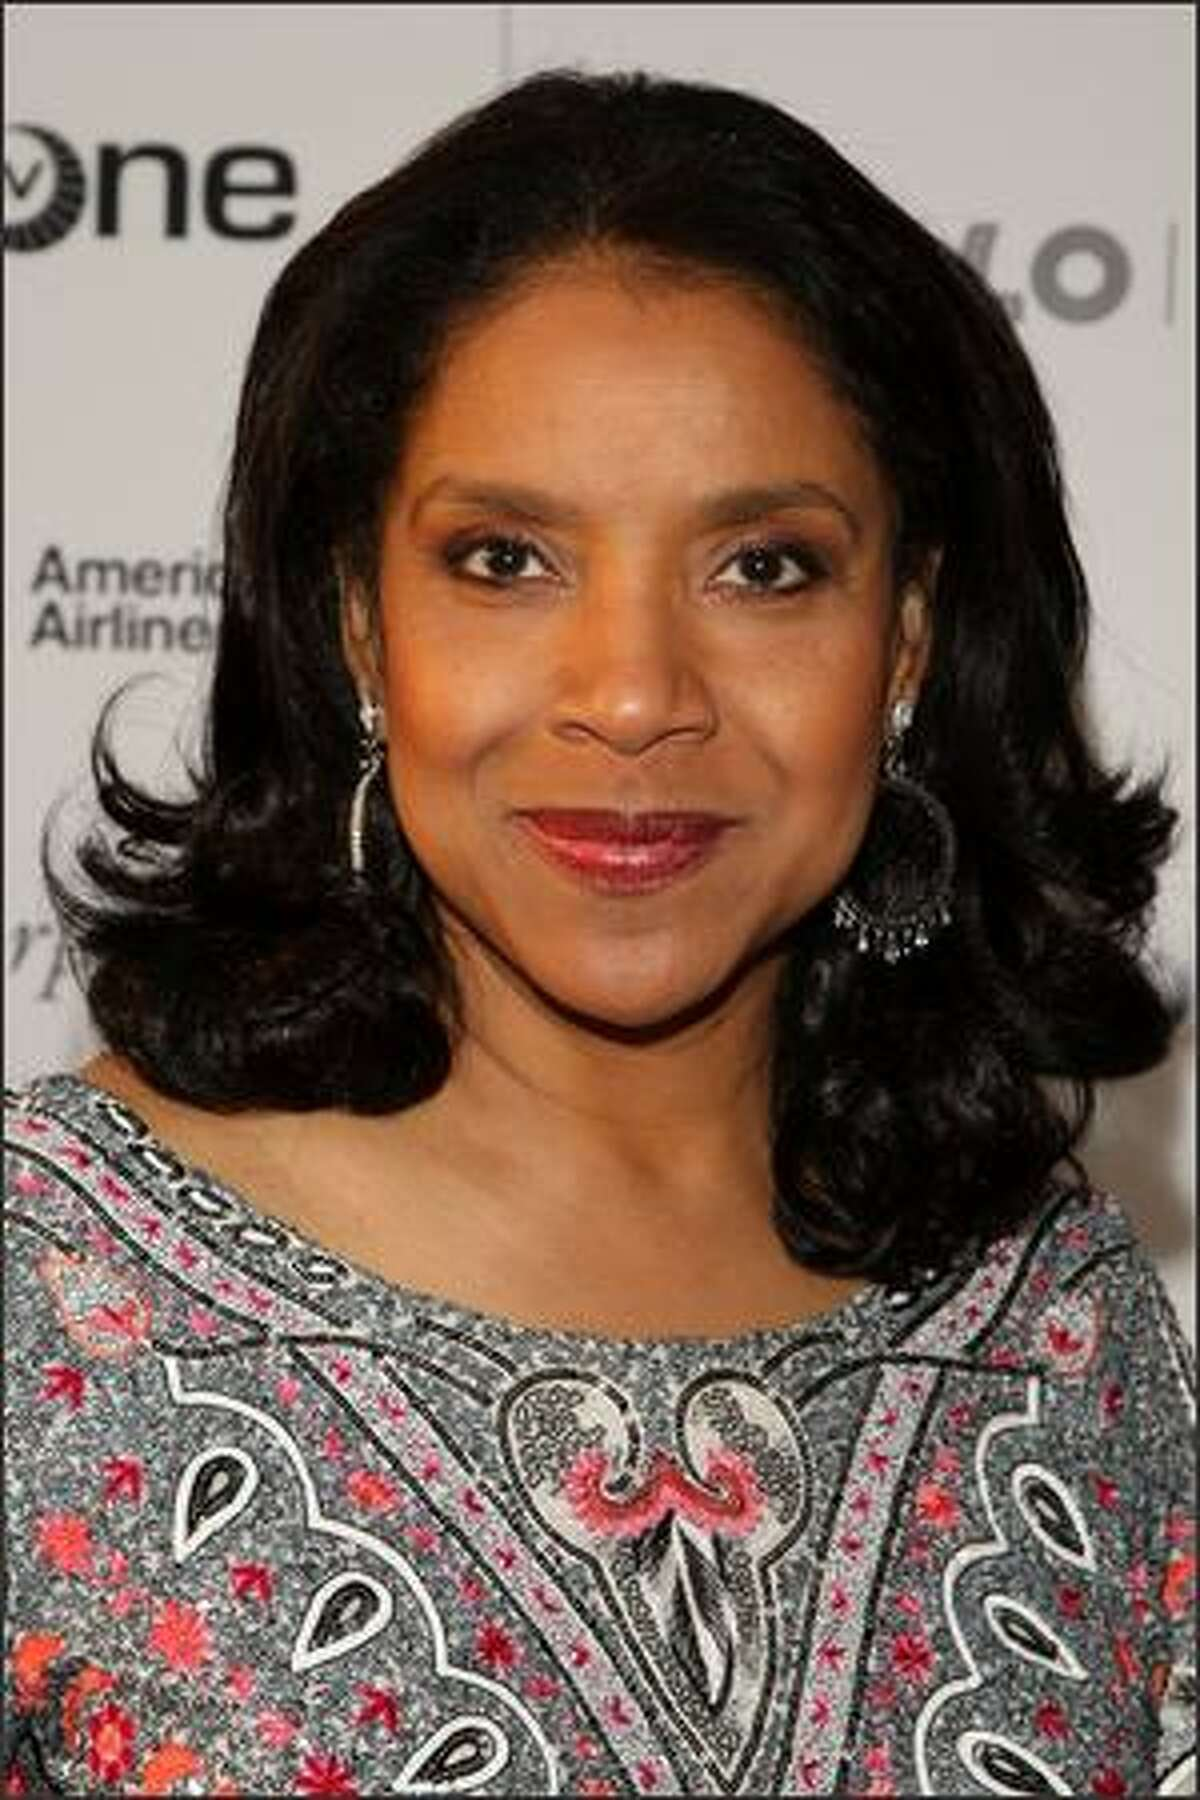 Actress Phylicia Rashad attends the Apollo Theater 75th Anniversary Gala at The Apollo Theater in New York City.